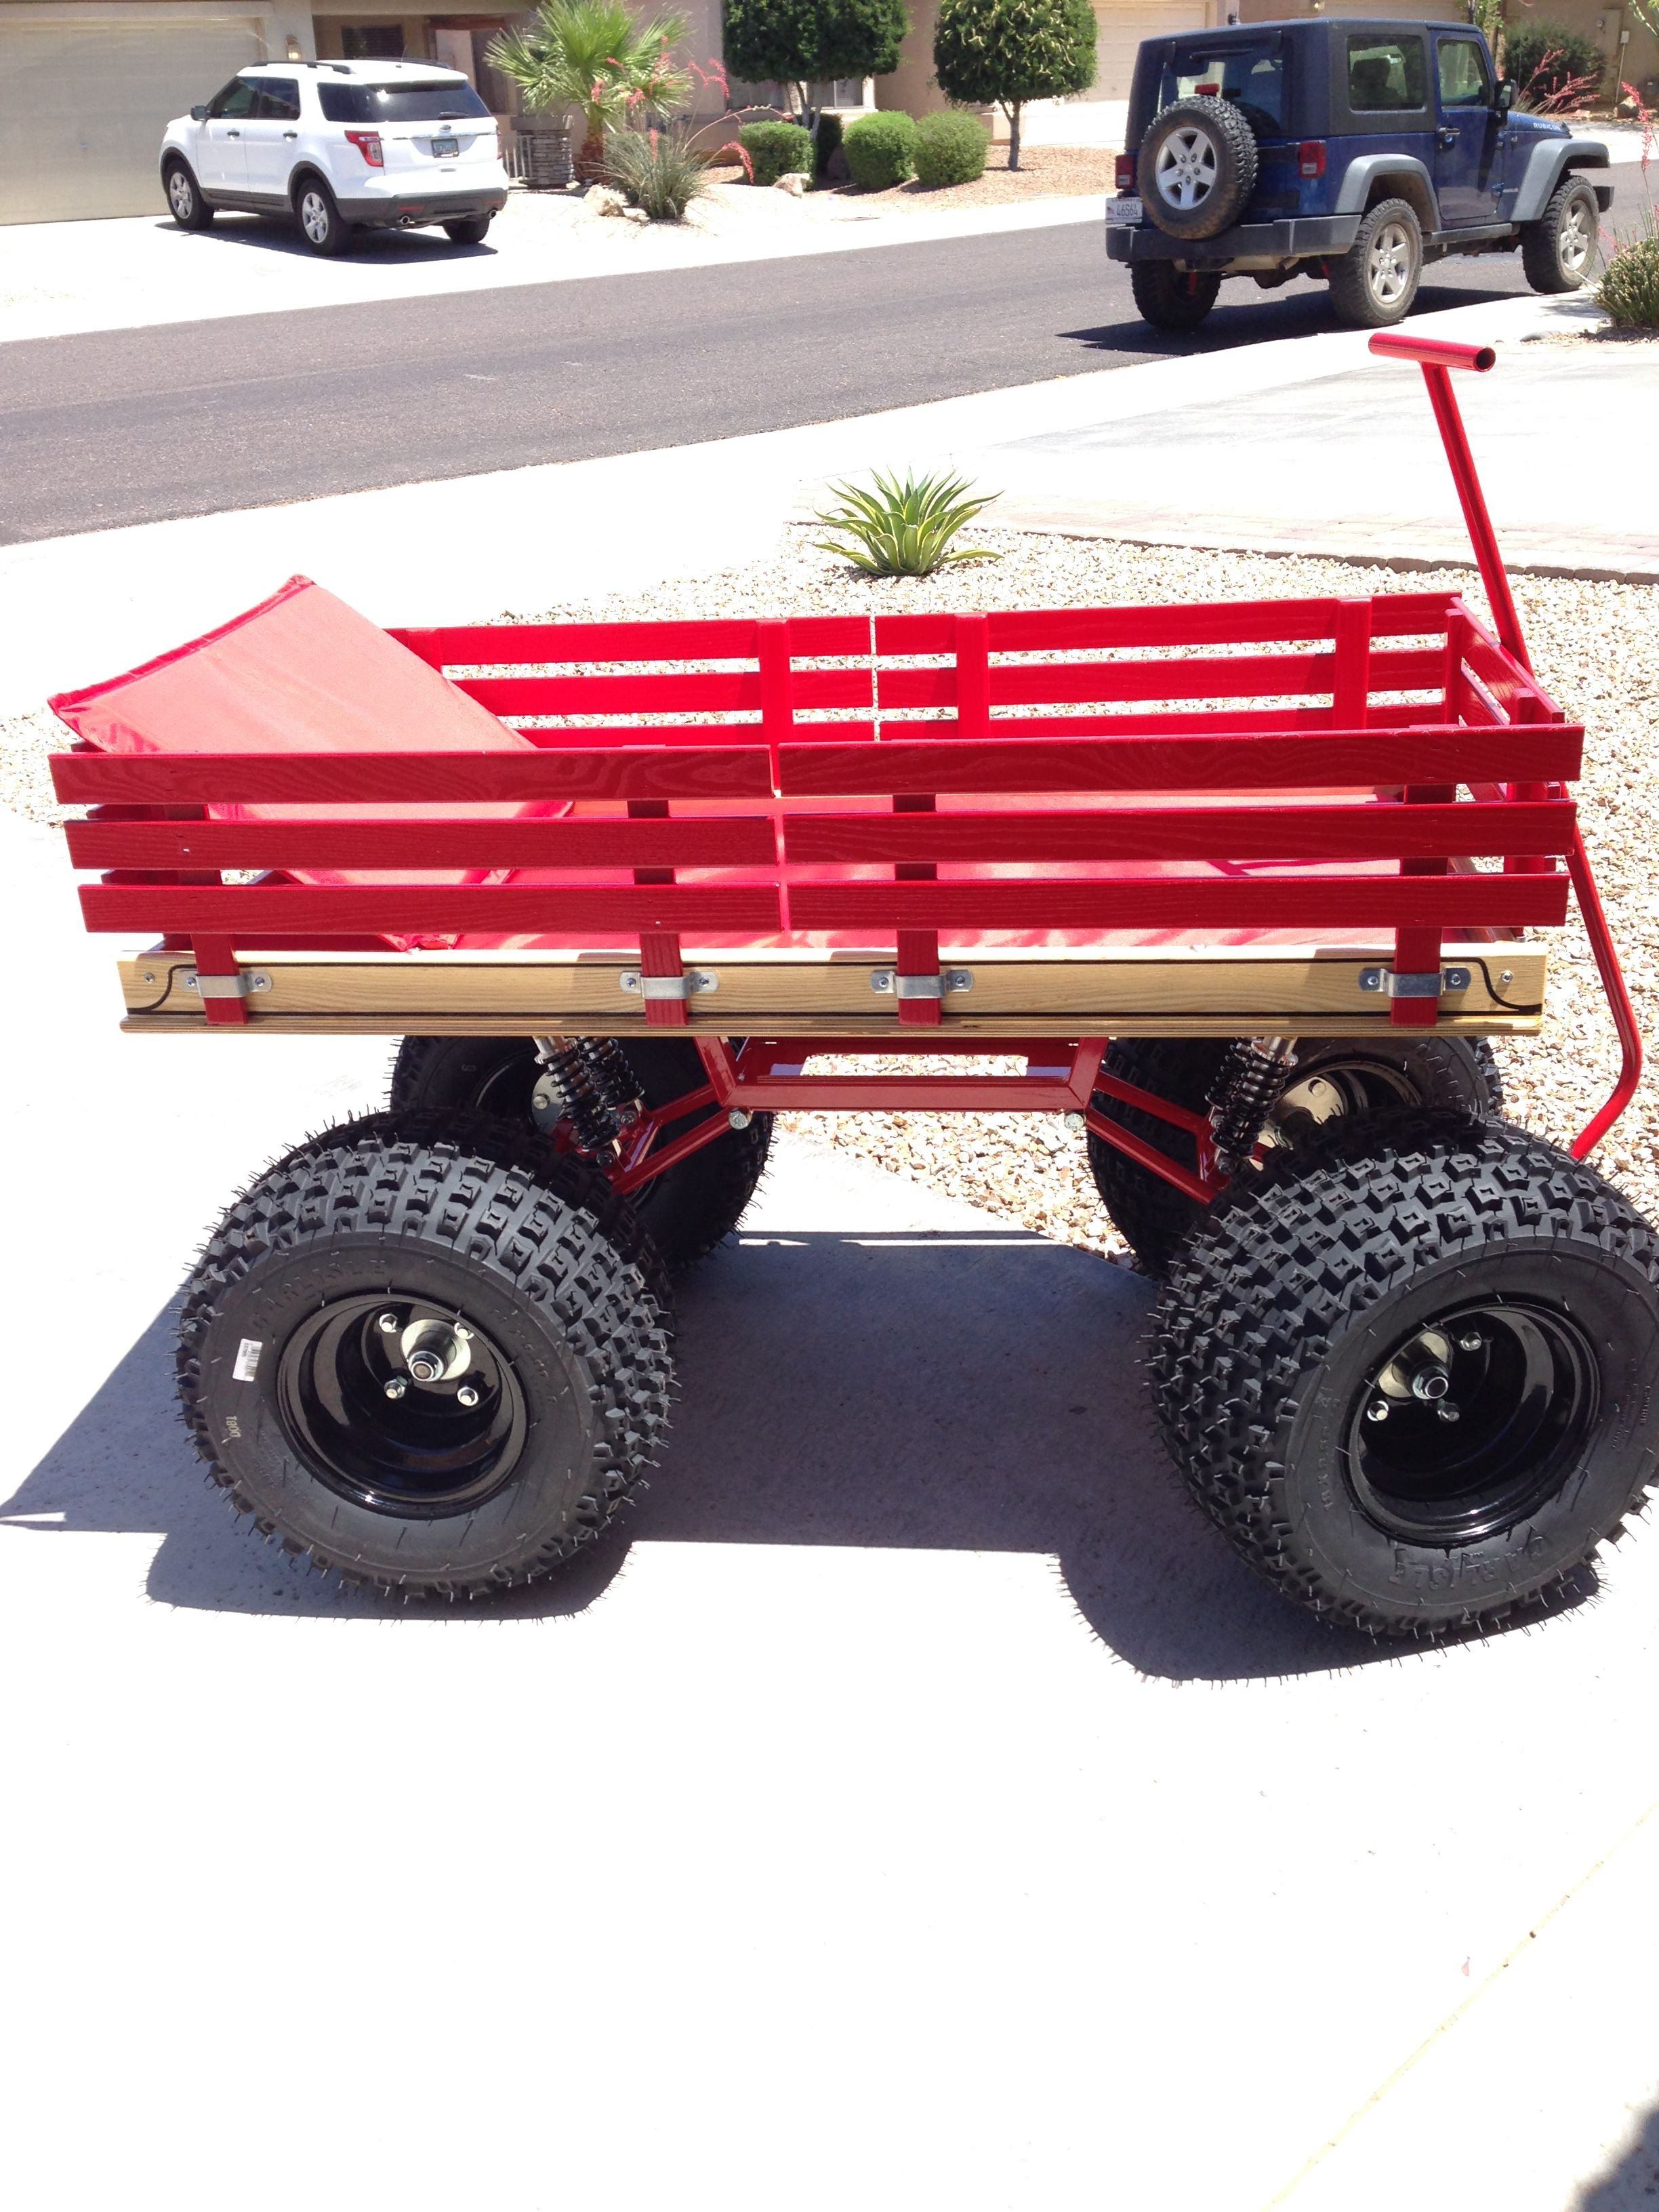 Red Wagon With Big Tires The Wagon